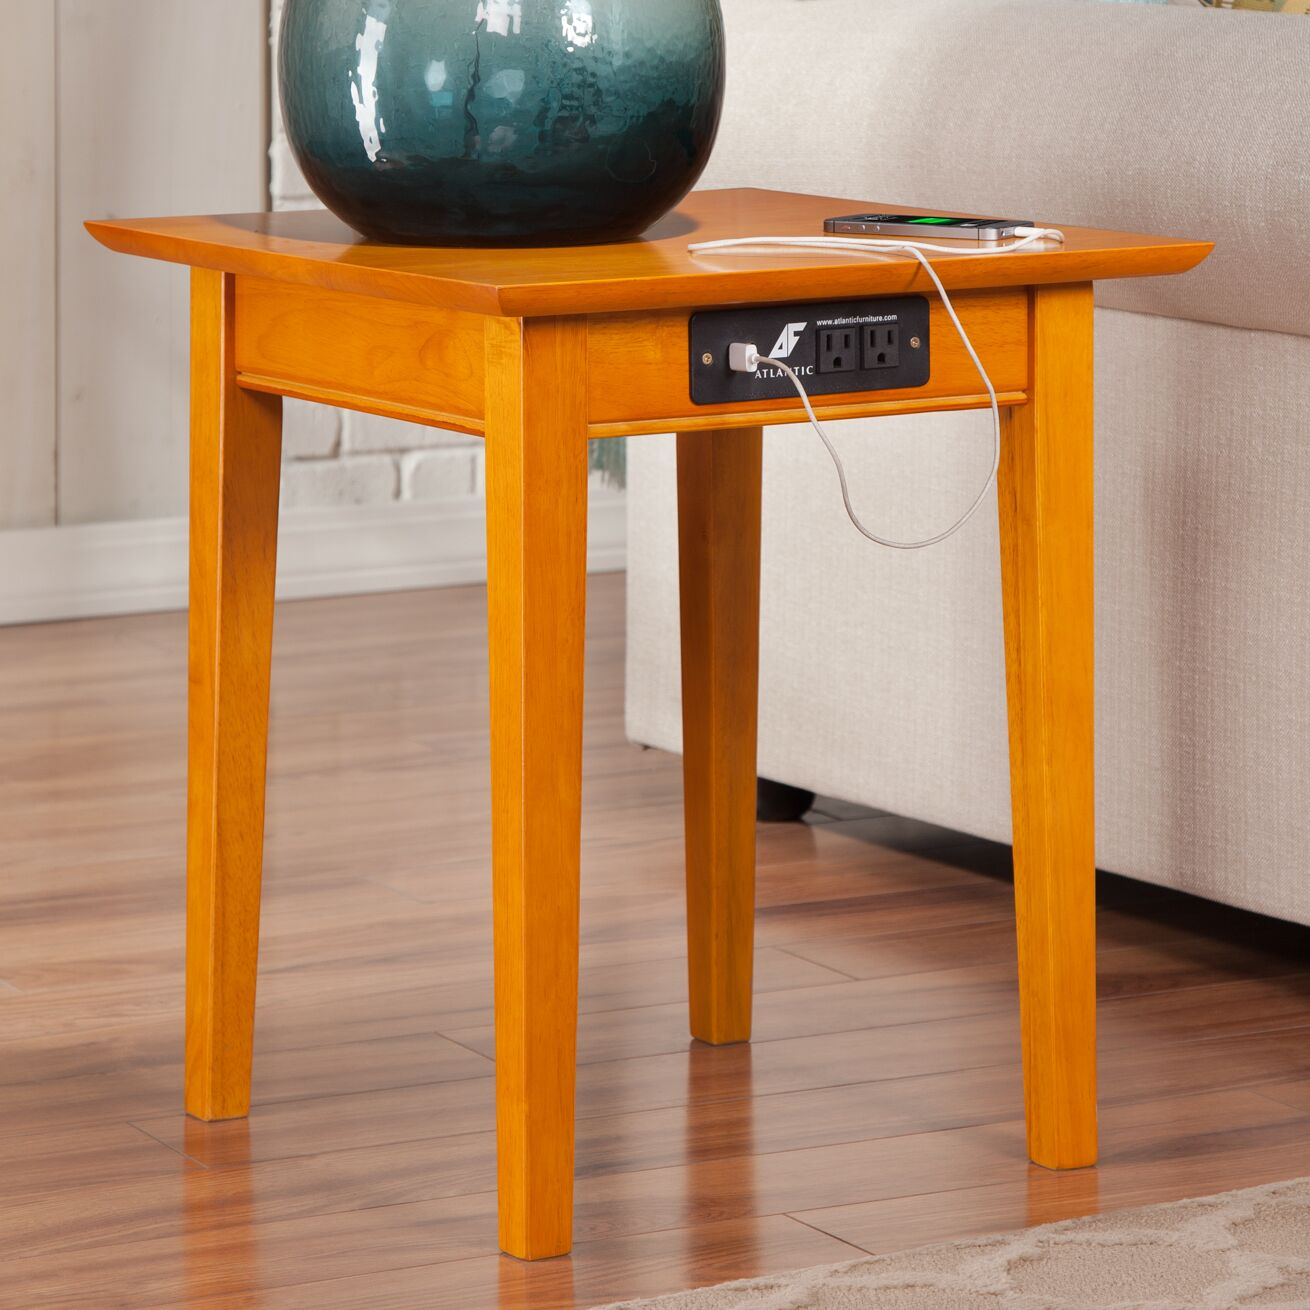 Ithaca End Table with Charging Station Color: Caramel Latte